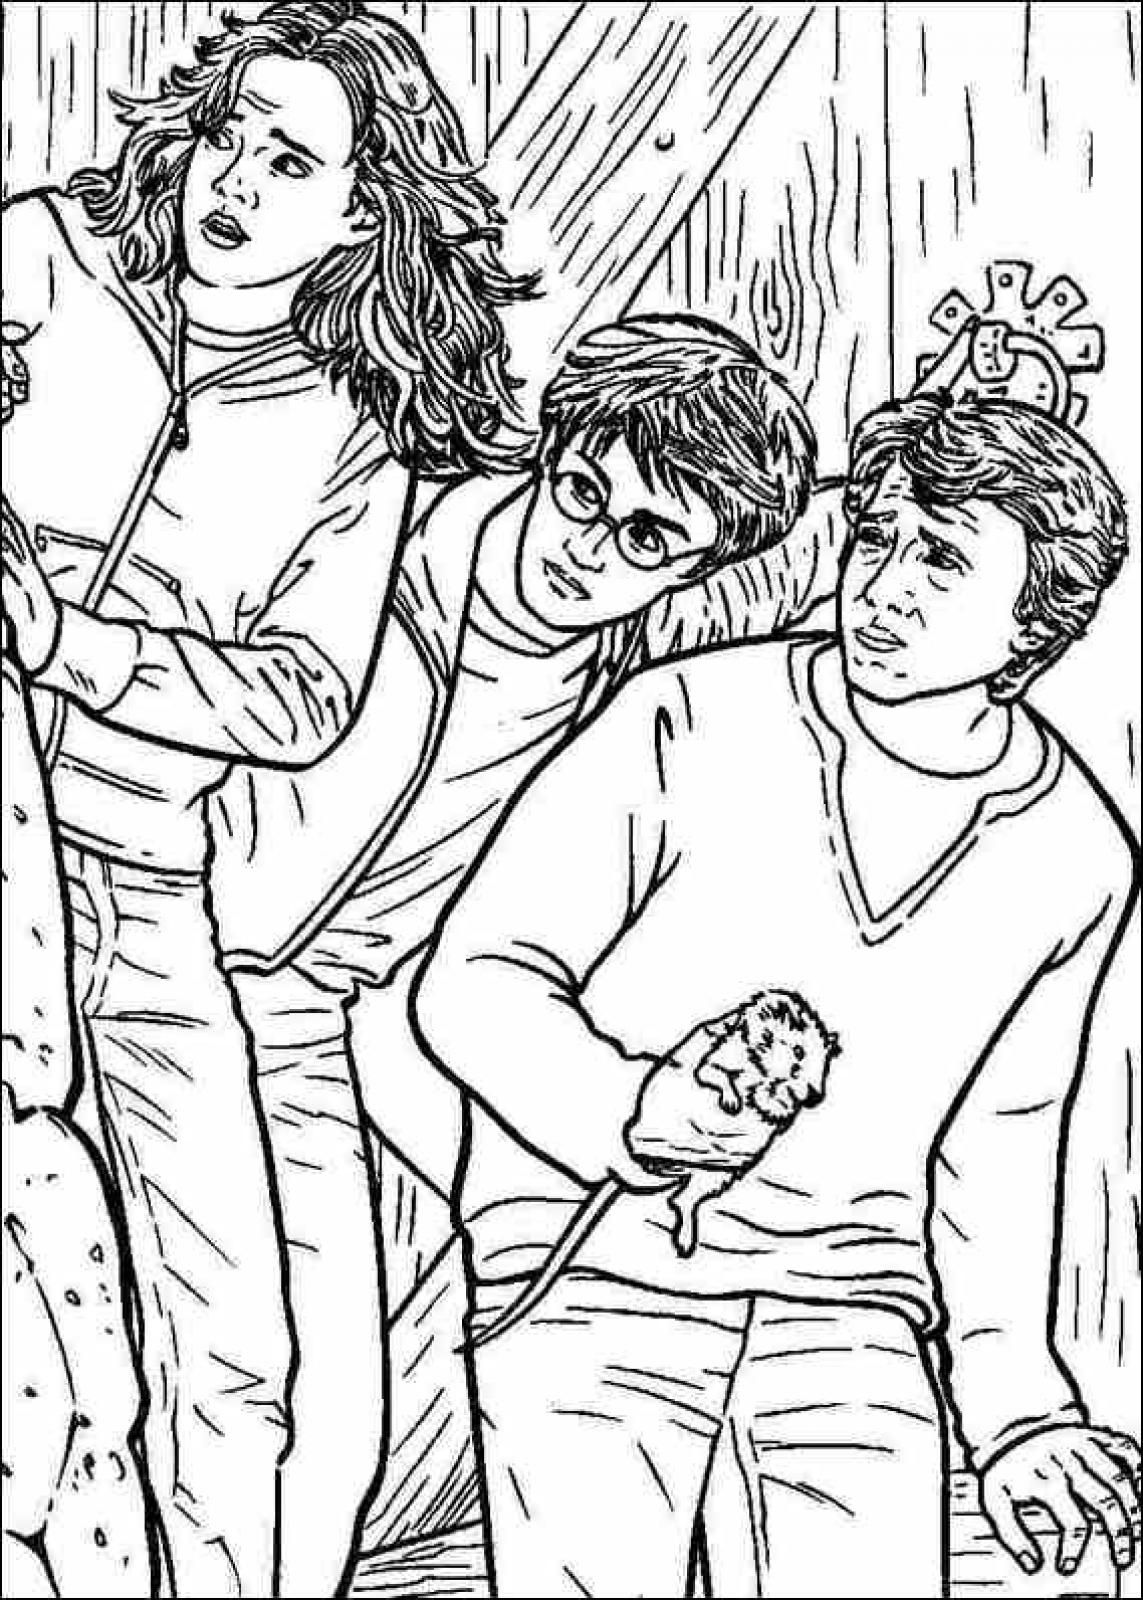 Harry Potter Coloring Pages To Print. Harry Potter Coloring pages and sheets  Find your favorite cartoon coloring picures in the Library harry potter colouring Google Search Pinterest